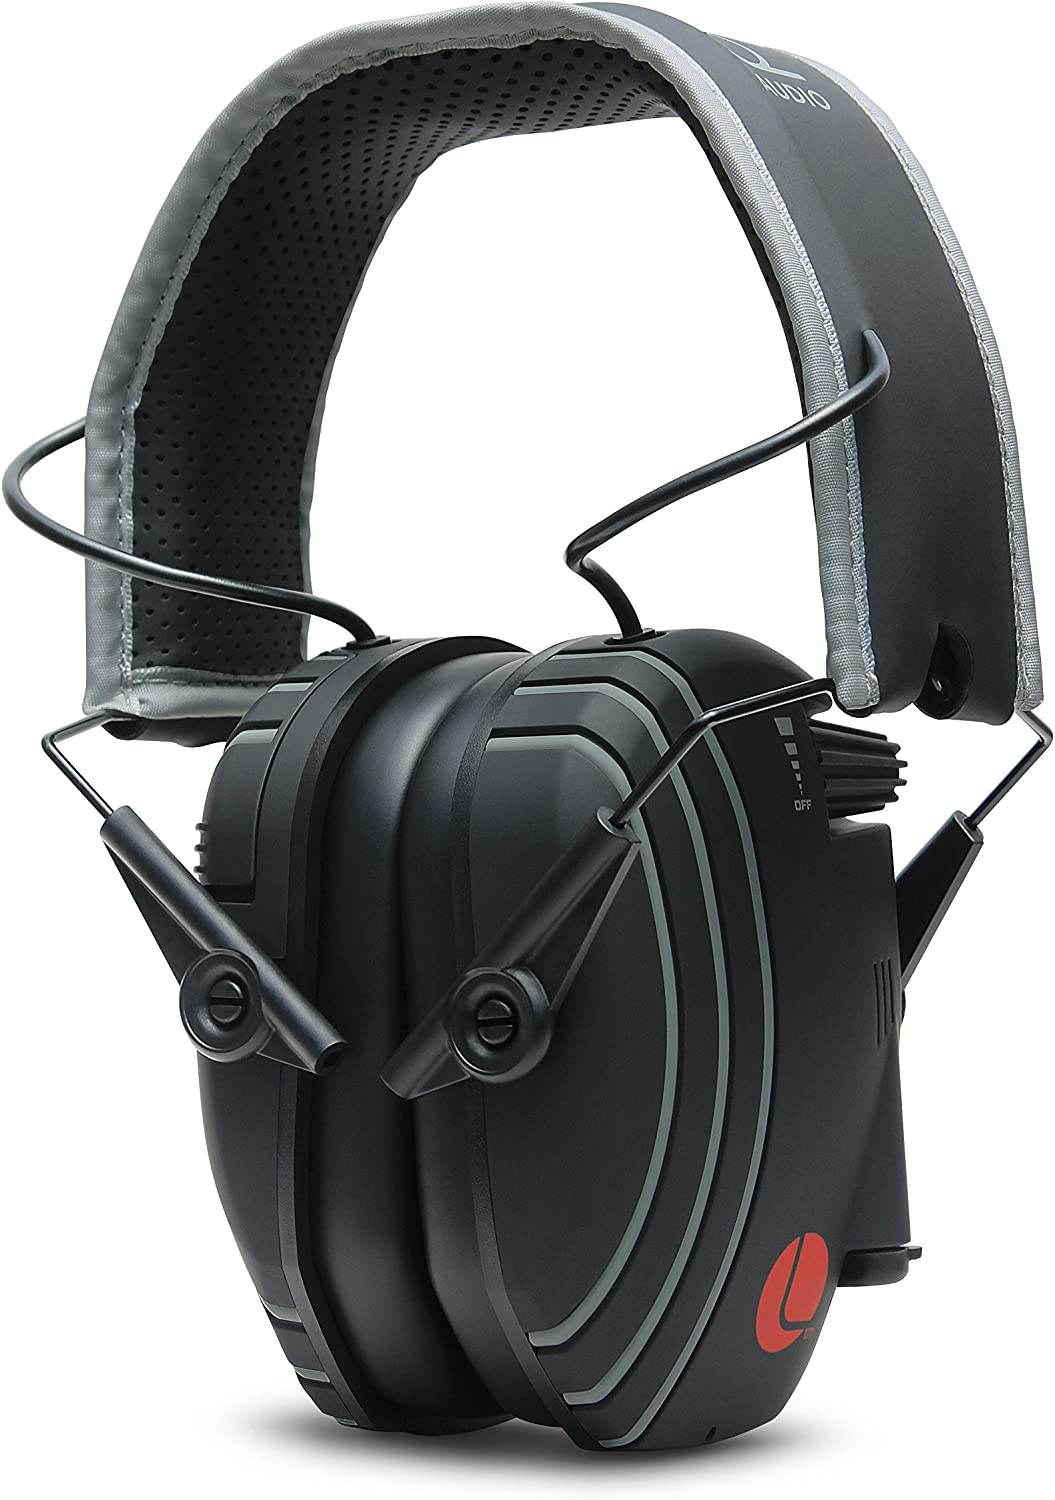 Lucid Audio AMPED Sound Amplifying Hearing Headphones - Black/Gray On-The-Ear (Hearing protection, headphones, hearing enhancement, hearing amplifier, sound reduction, TV enhancement, noise reduction)